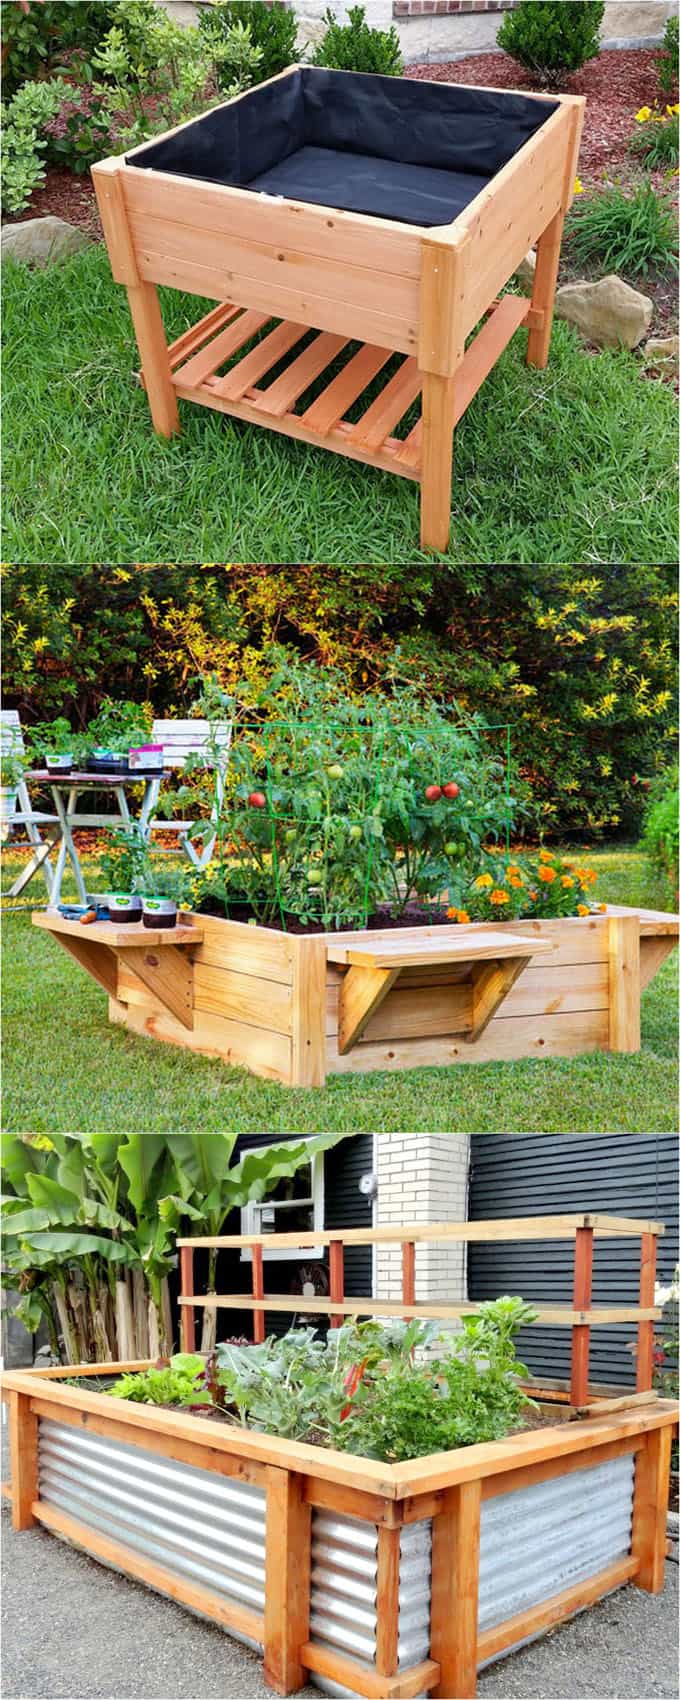 28 Best Diy Raised Bed Gardens Easy To Build Using Inexpensive Simple Materials Great